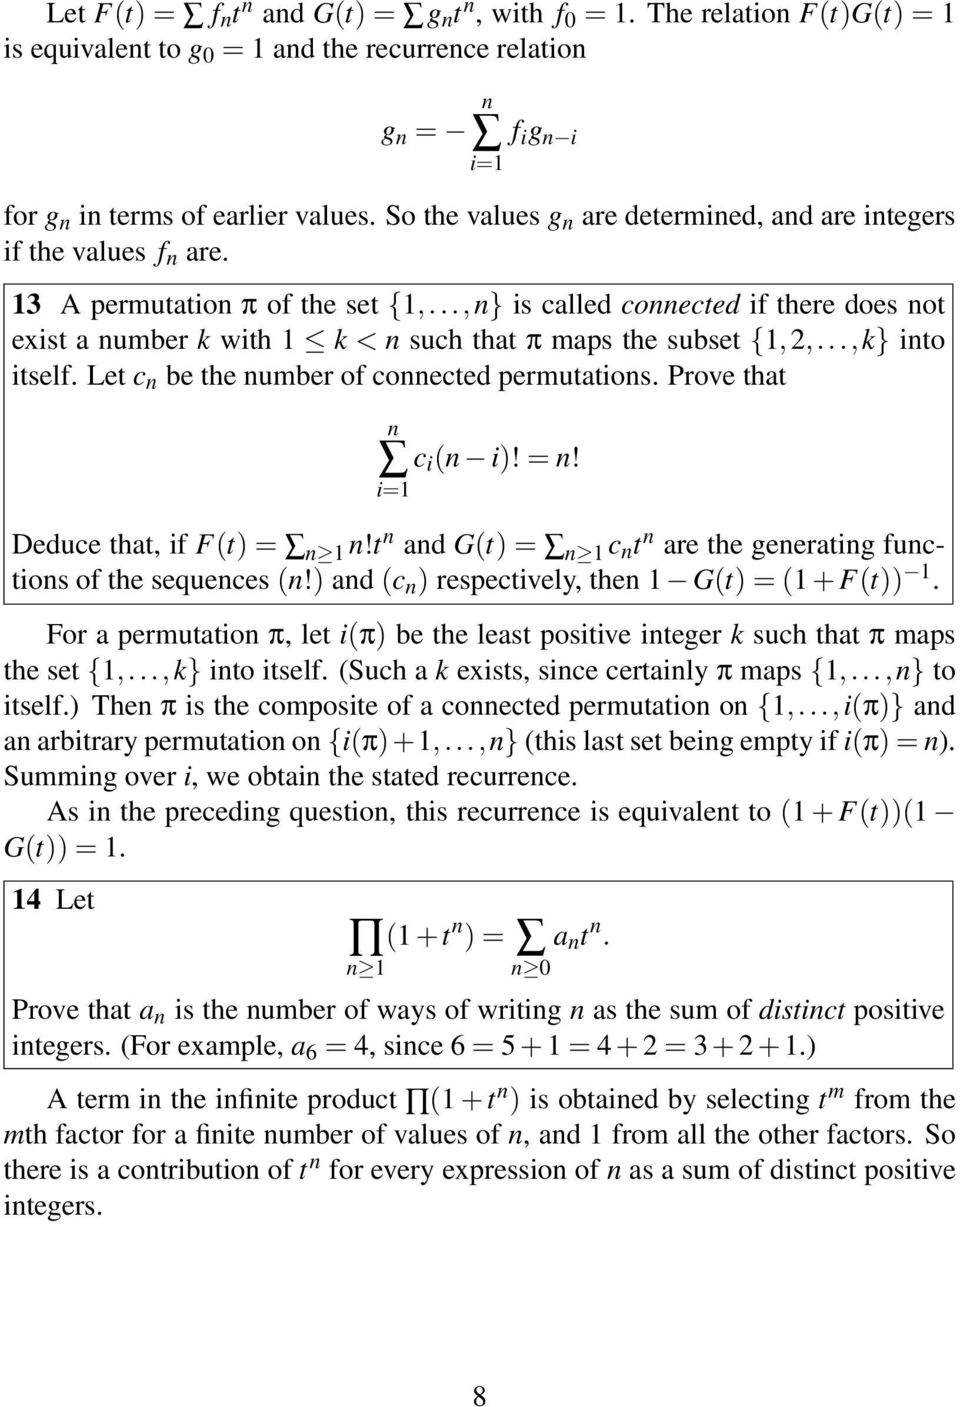 ..,k} ito itself. Let c be the umber of coected permutatios. Prove that i=1 c i ( i)! =! Deduce that, if F(t) = 1!t ad G(t) = 1 c t are the geeratig fuctios of the sequeces (!